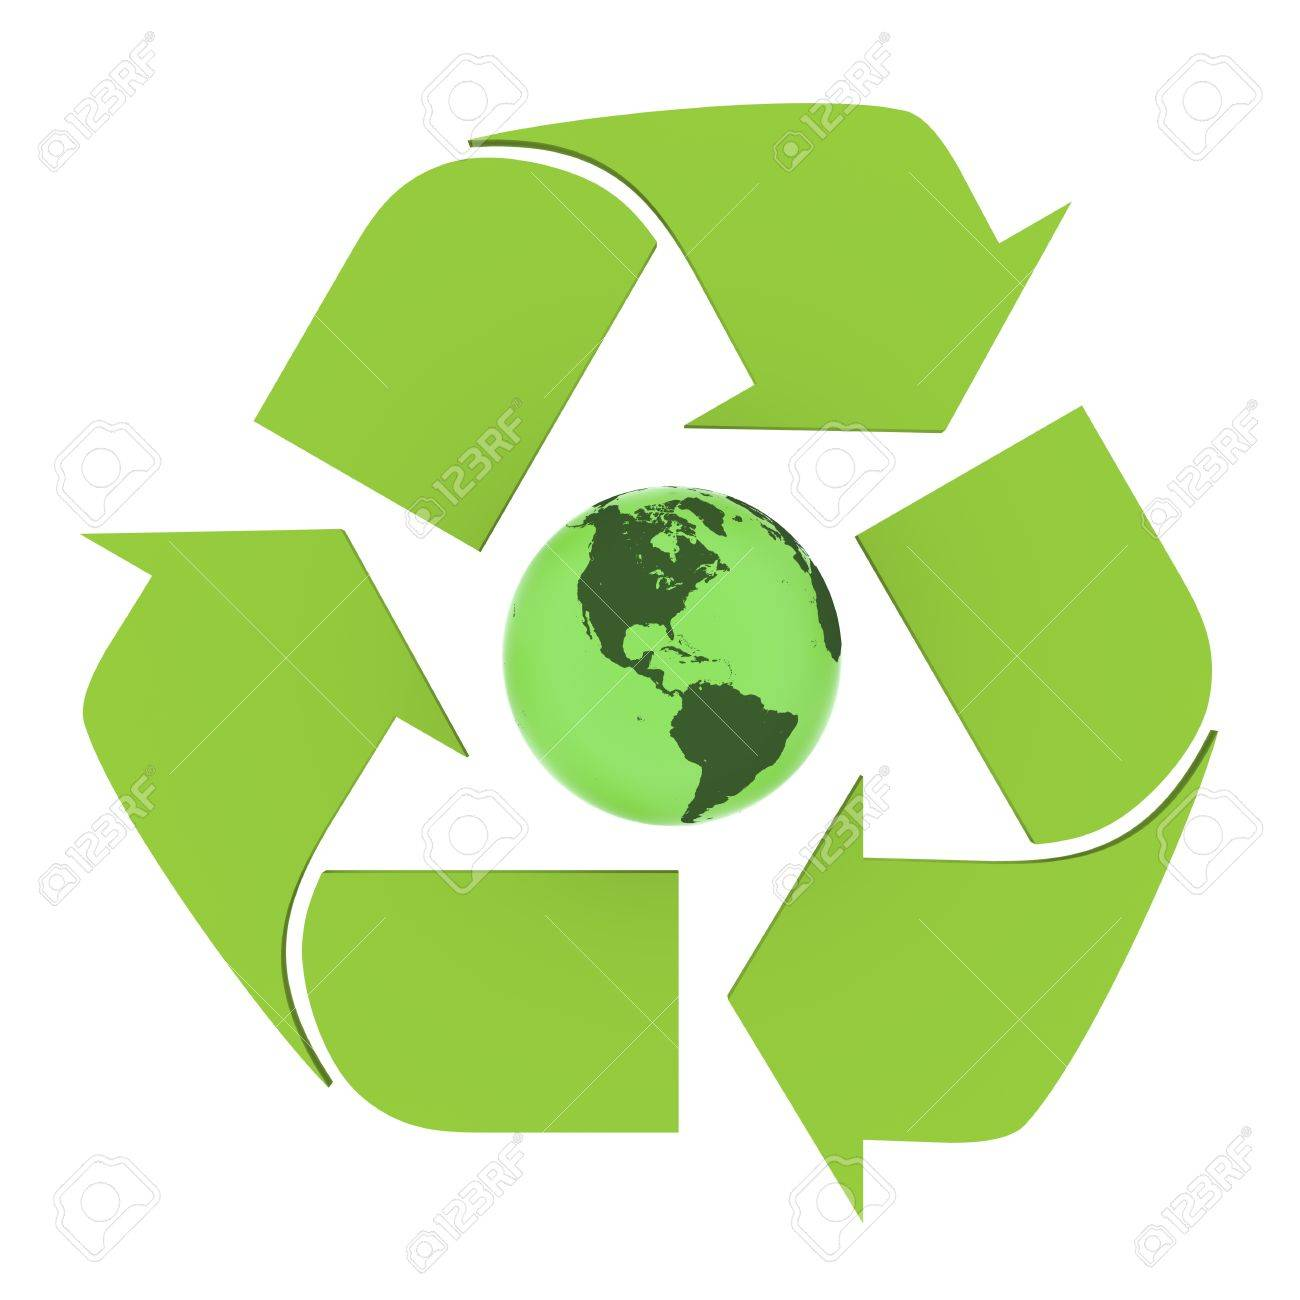 Green planet earth inside recycling symbol concept of green planet earth inside recycling symbol concept of environmental conservation isolated on white background biocorpaavc Gallery